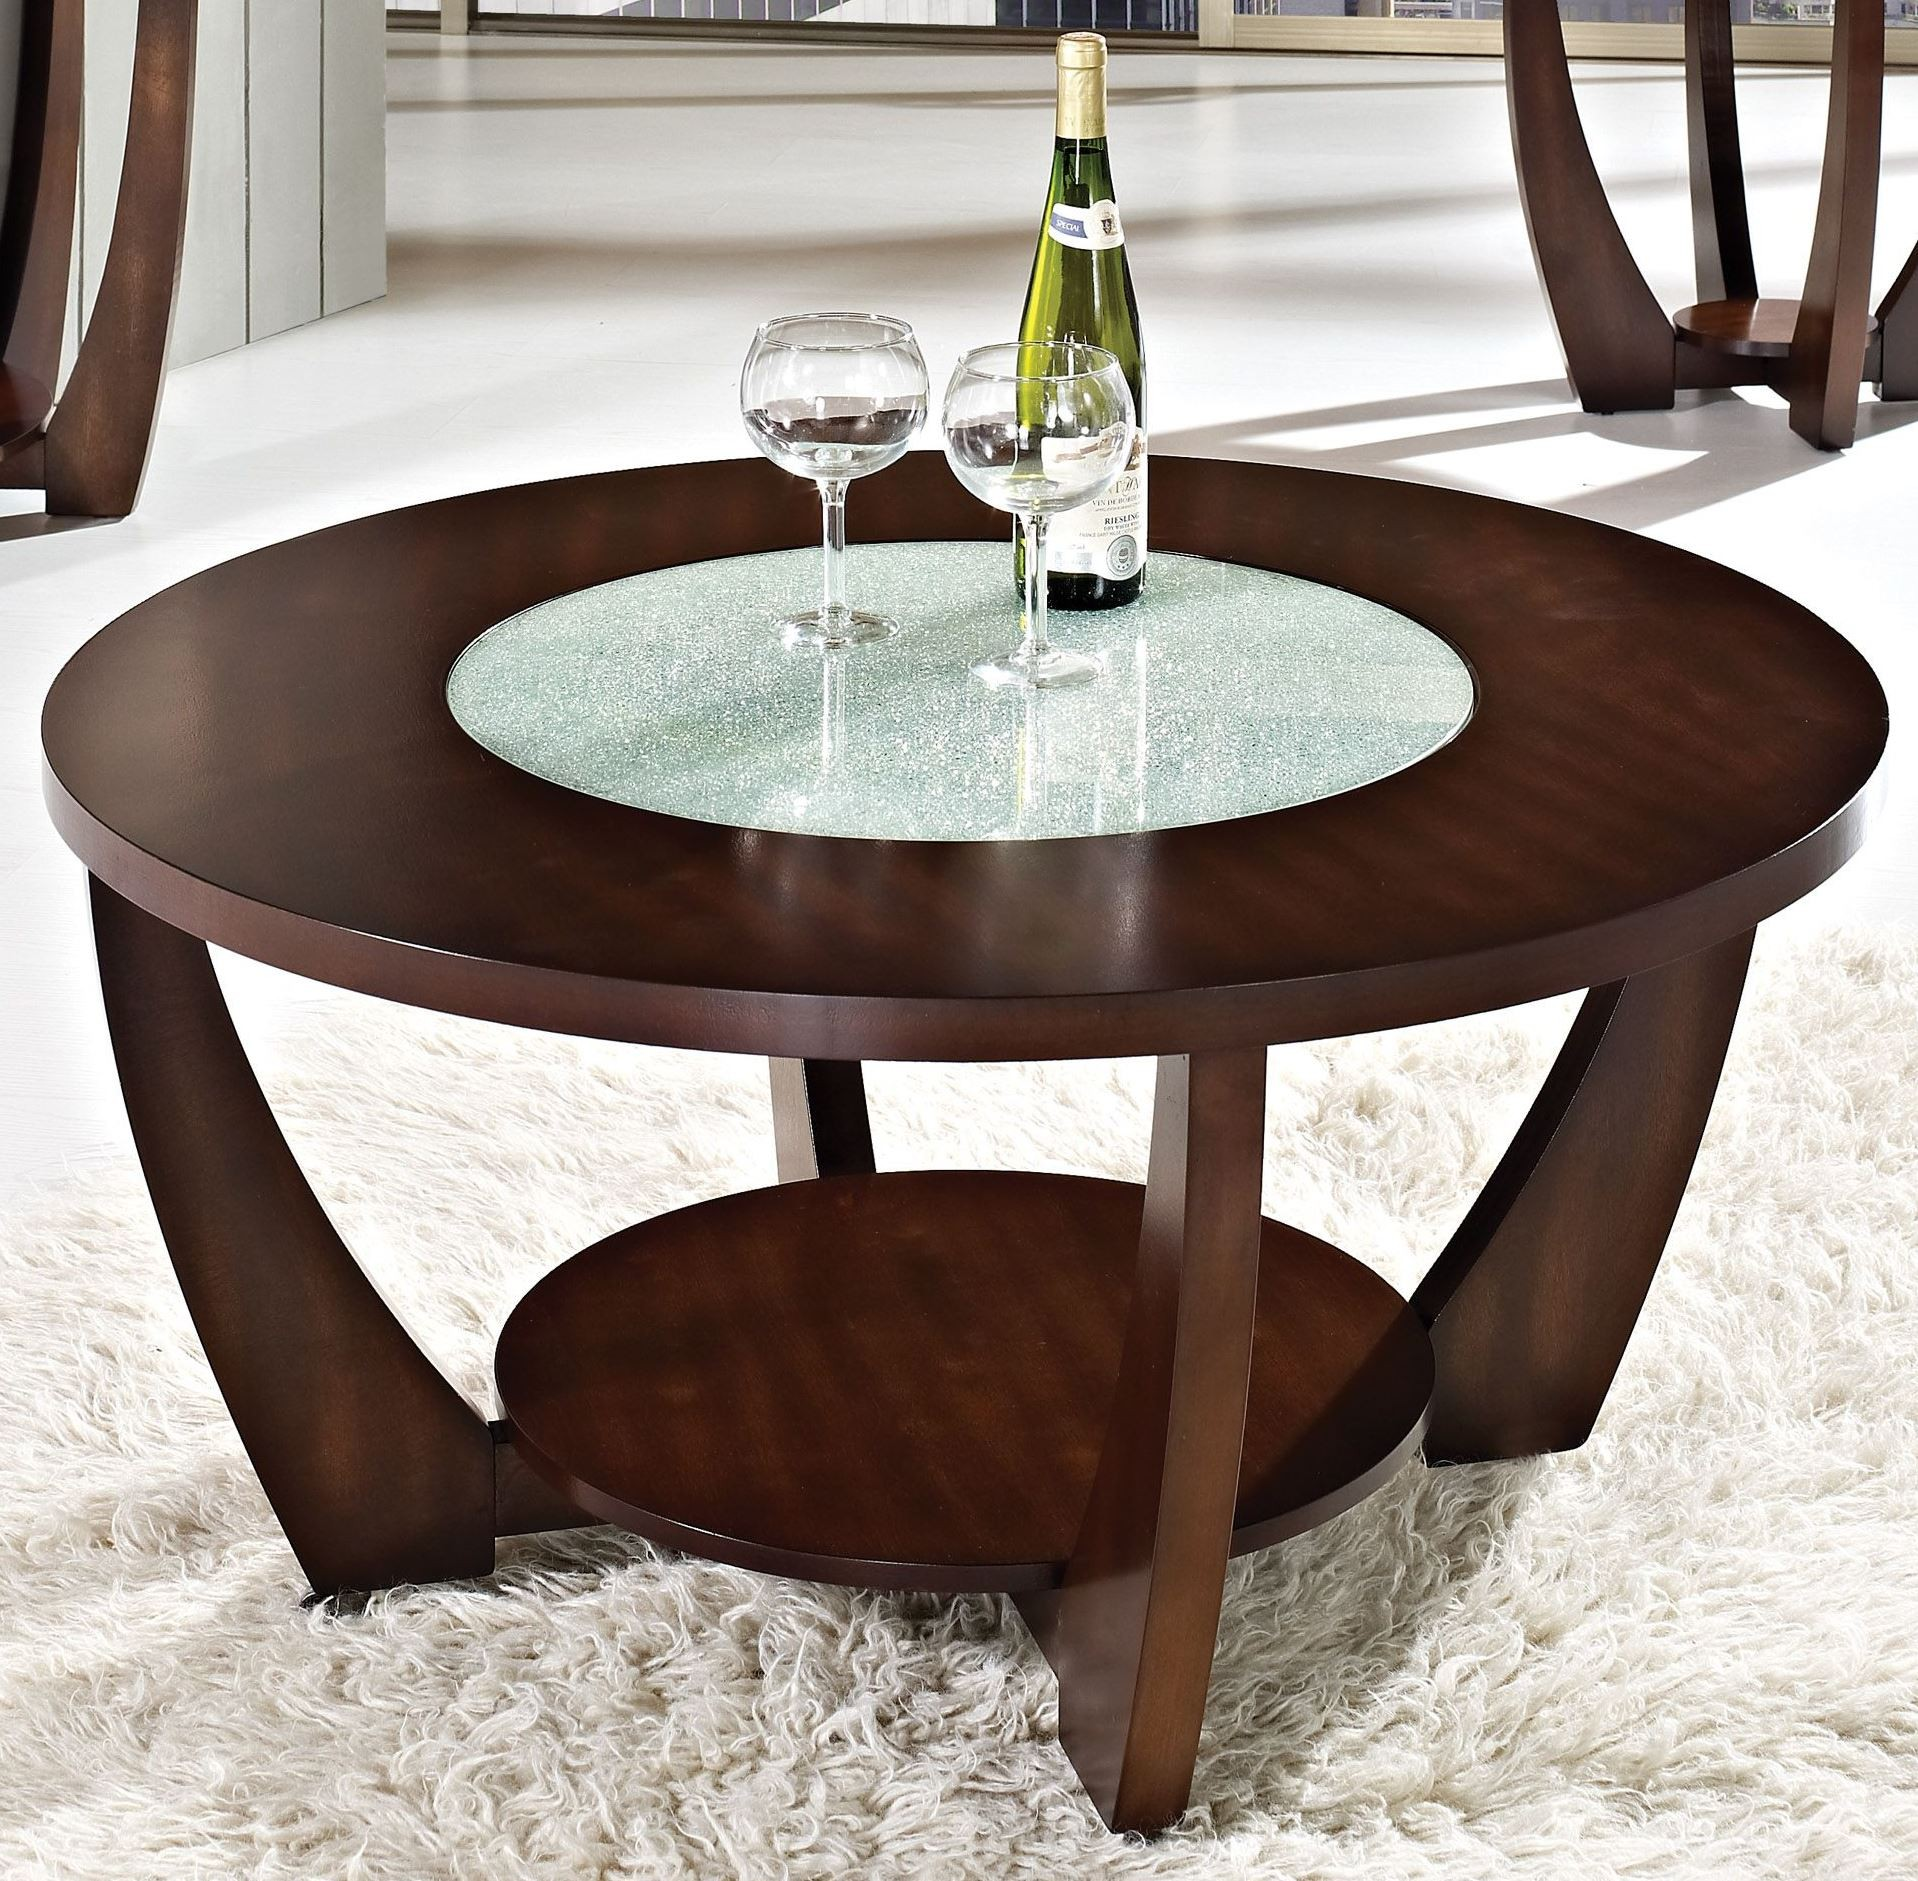 Rafael Merlot Cherry Cocktail Table With Casters From